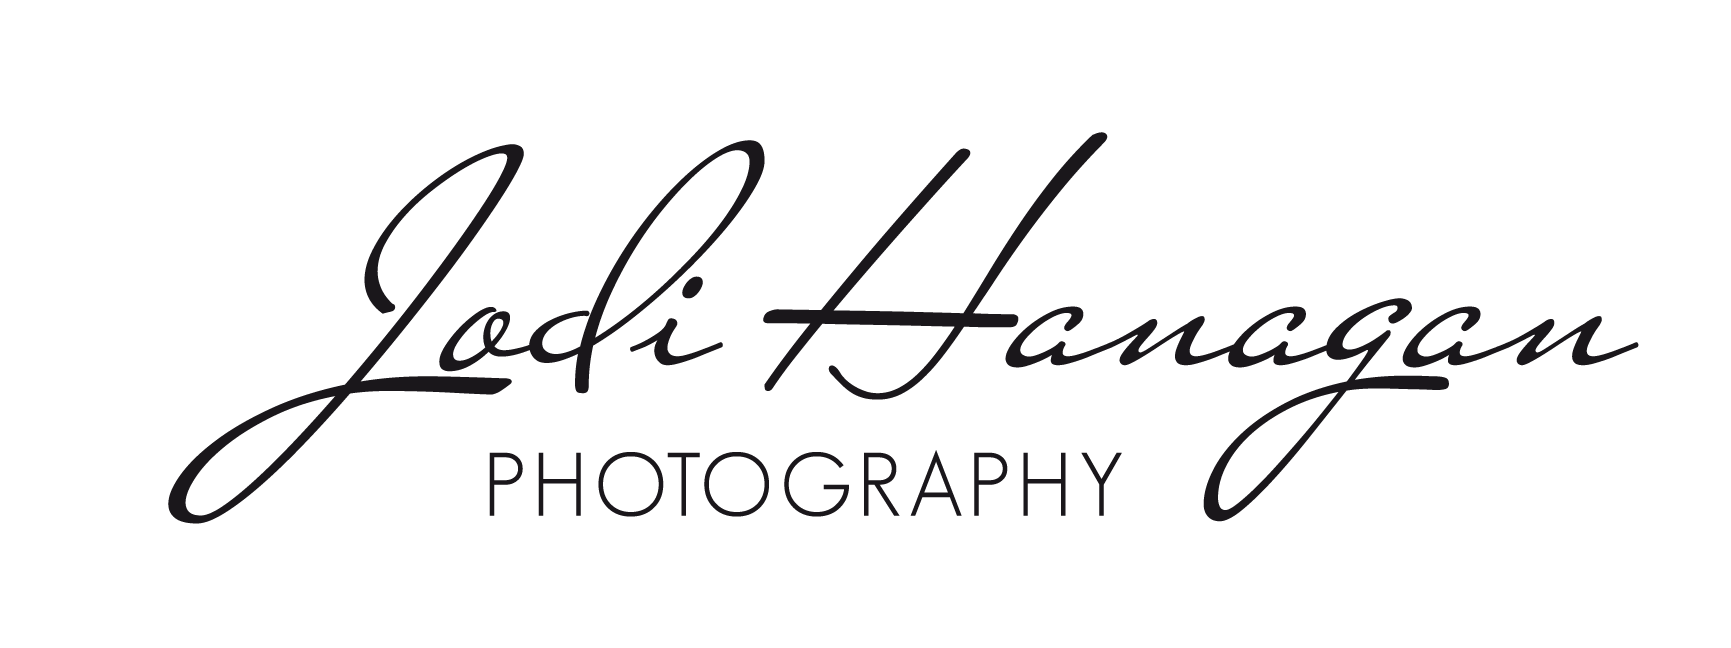 Jodi Hanagan Photography